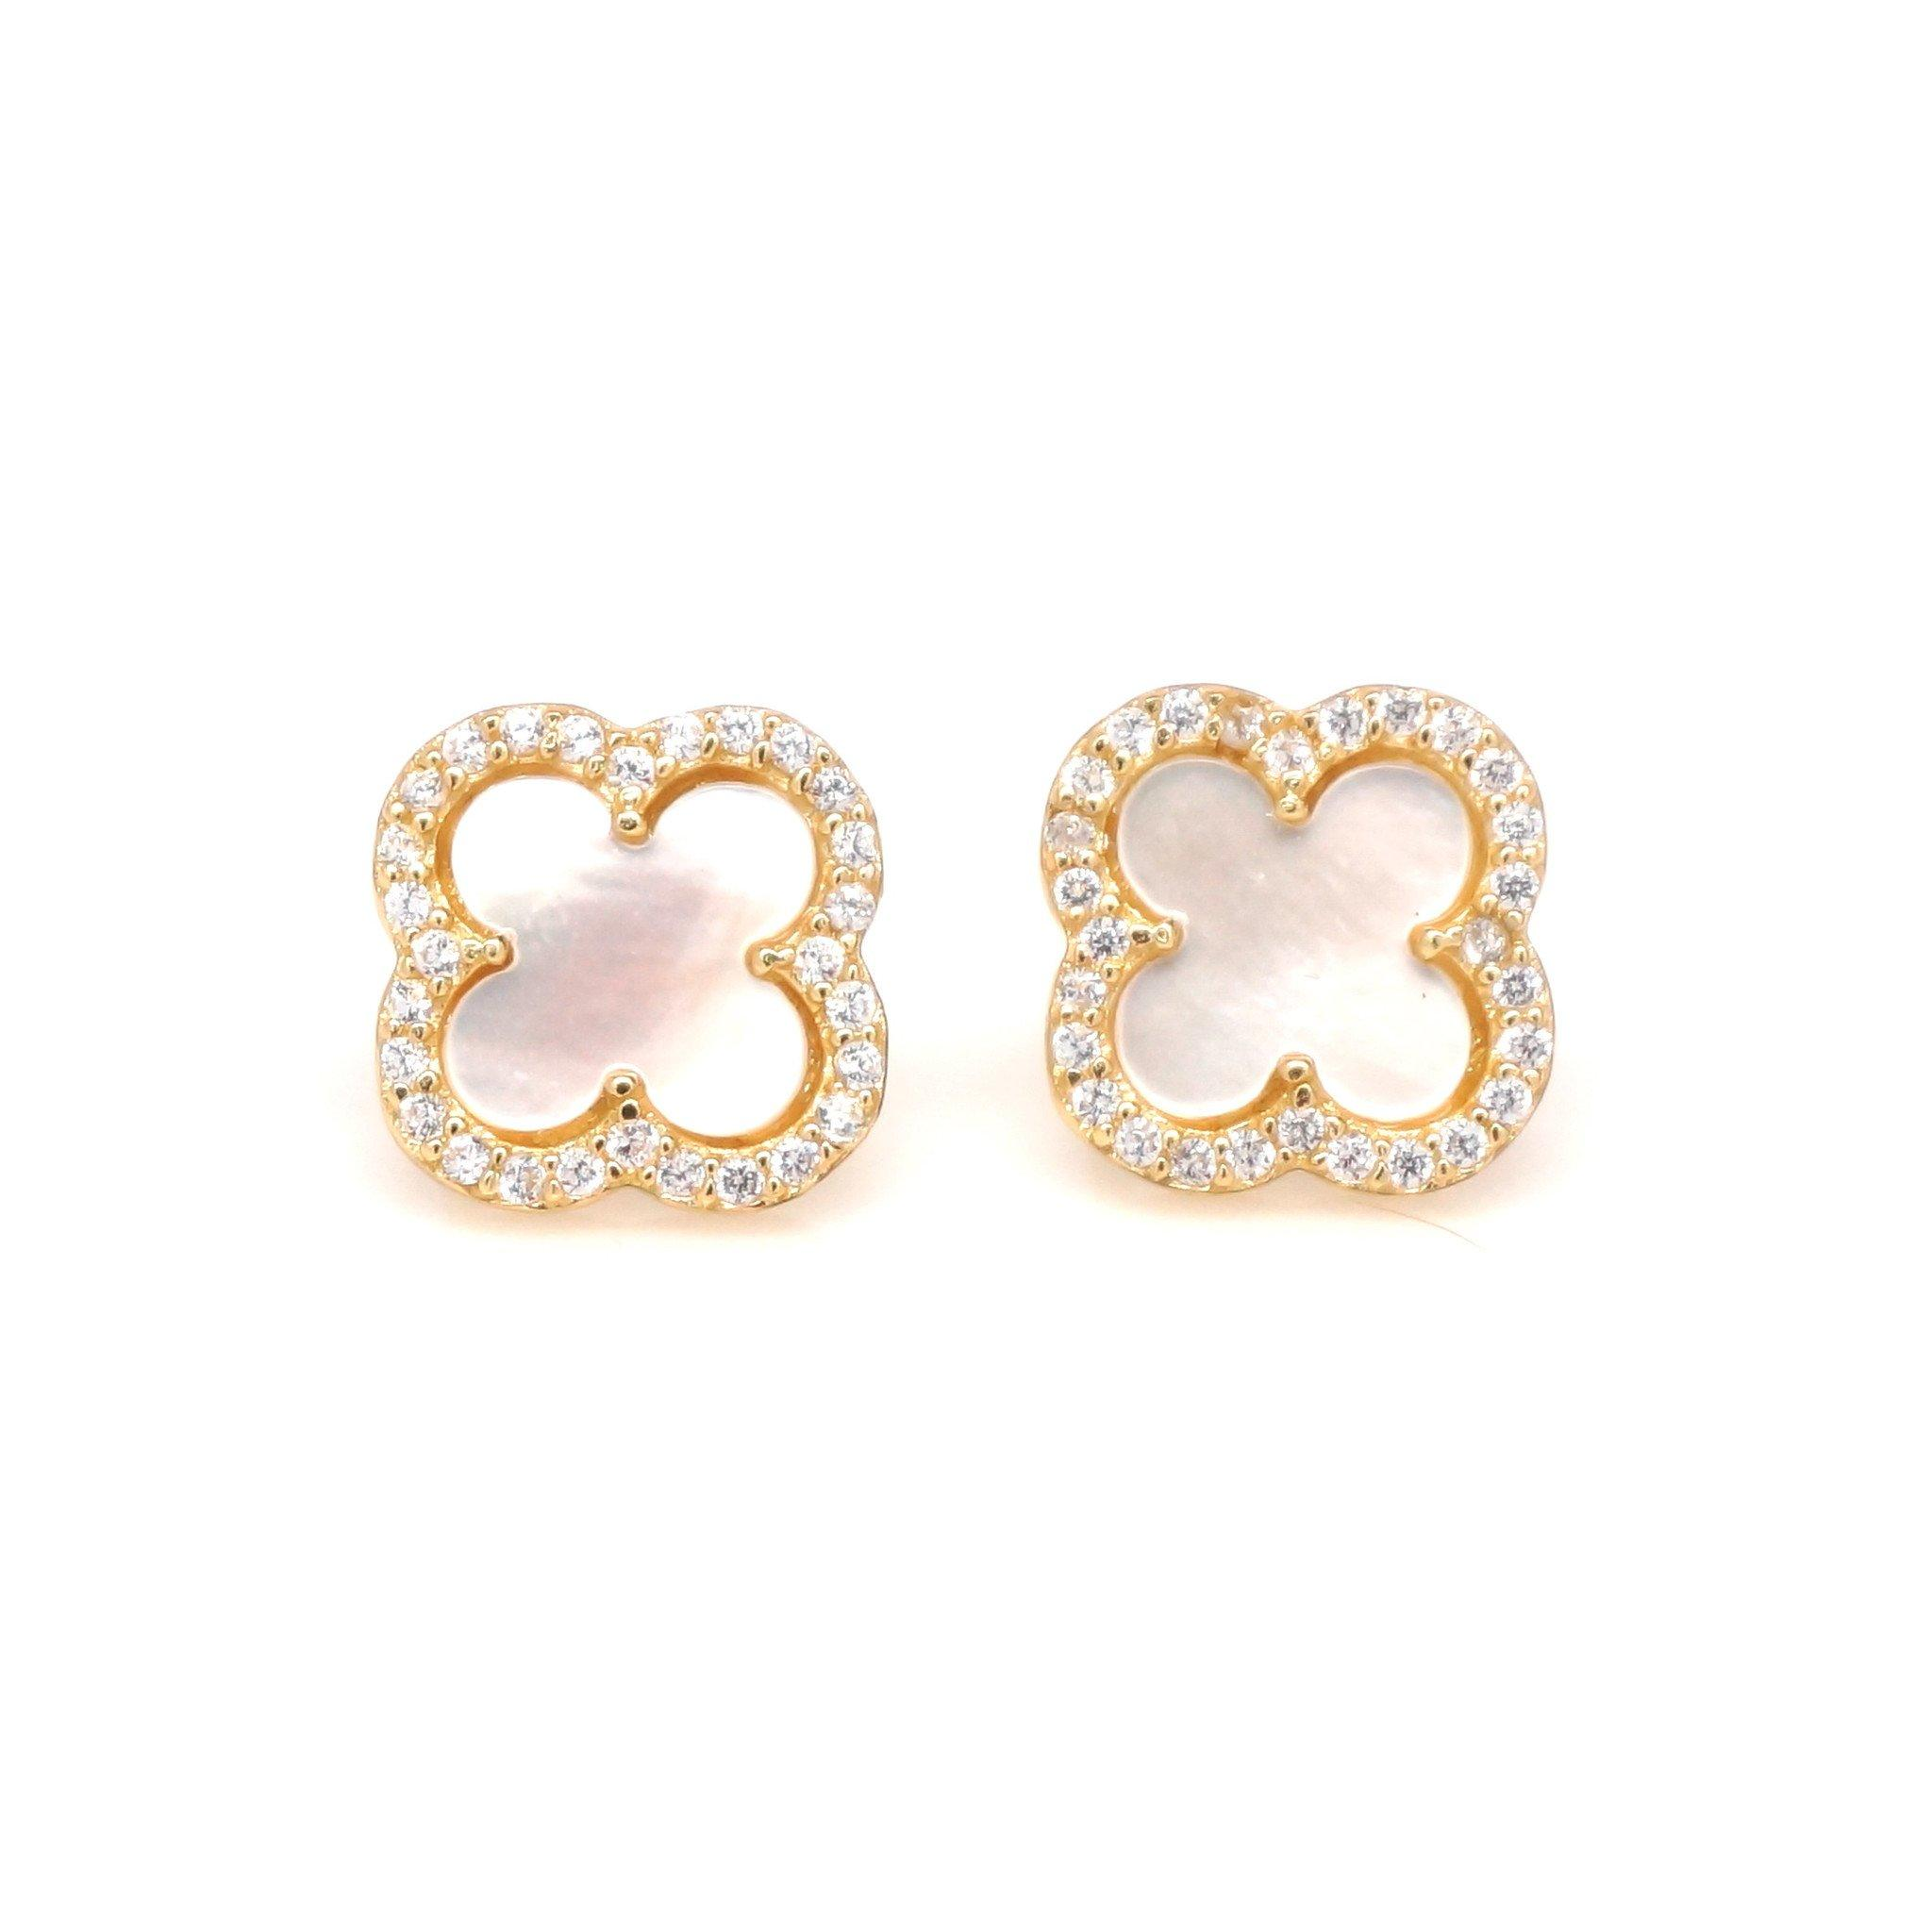 Image of Mother of Pearl CZ Clover Stud Earrings